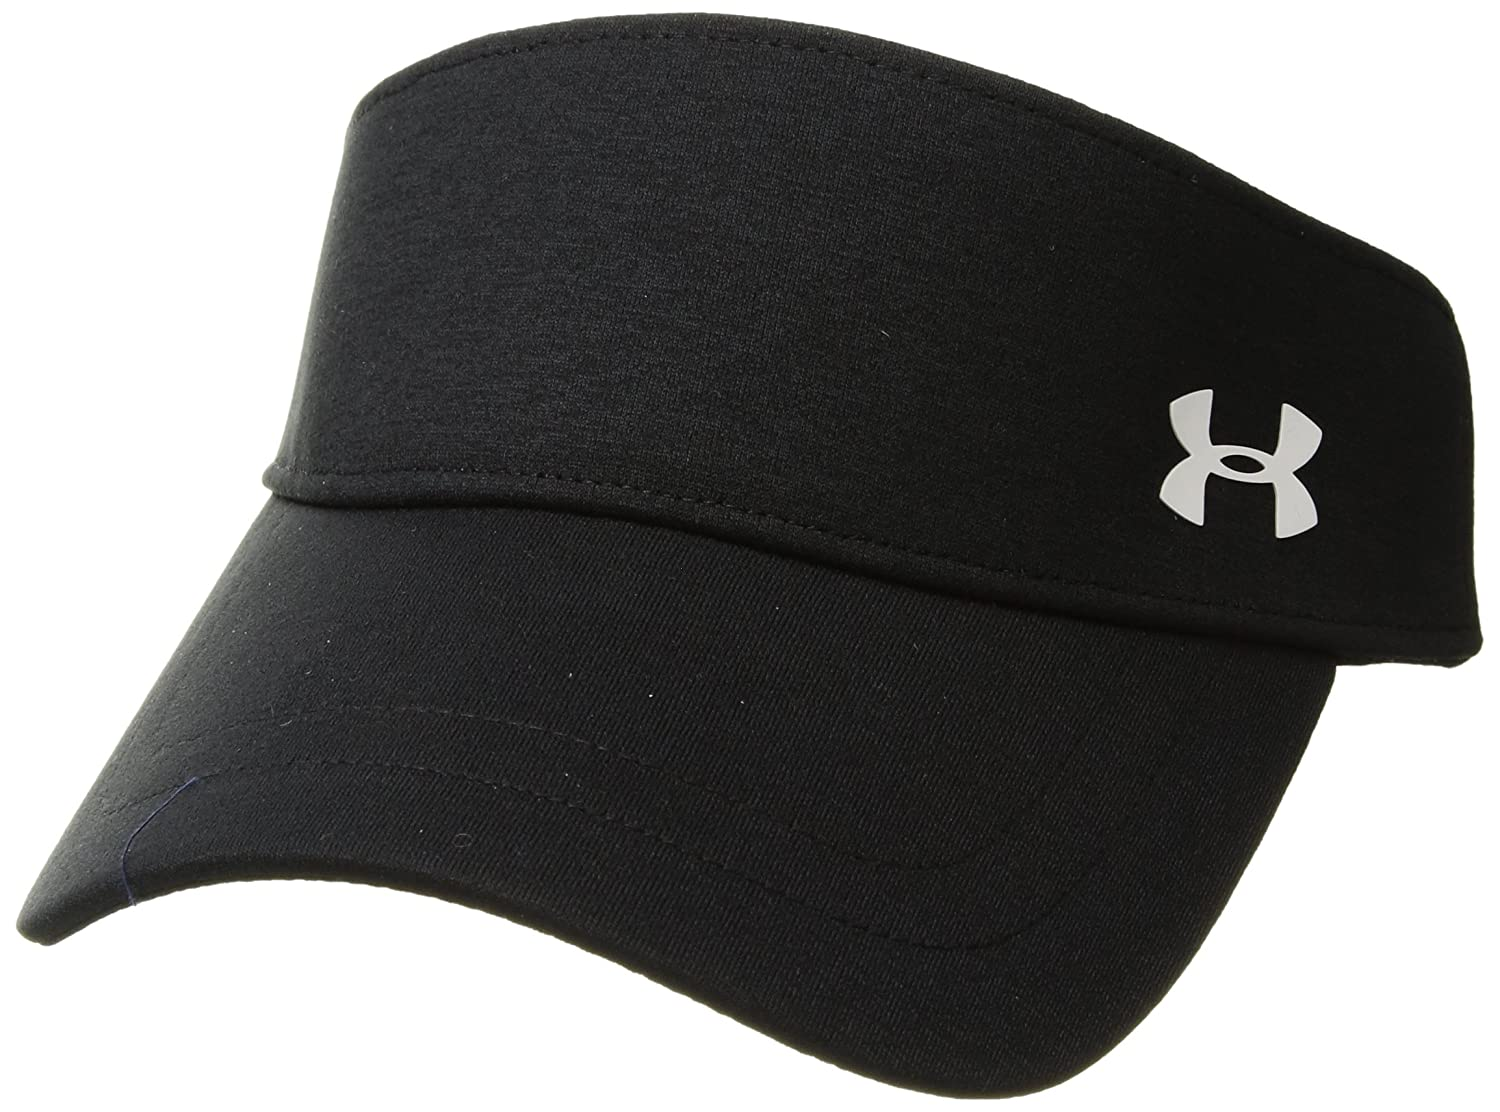 39d48aebf0e7b Amazon.com  Under Armour Women s Renegade Visor